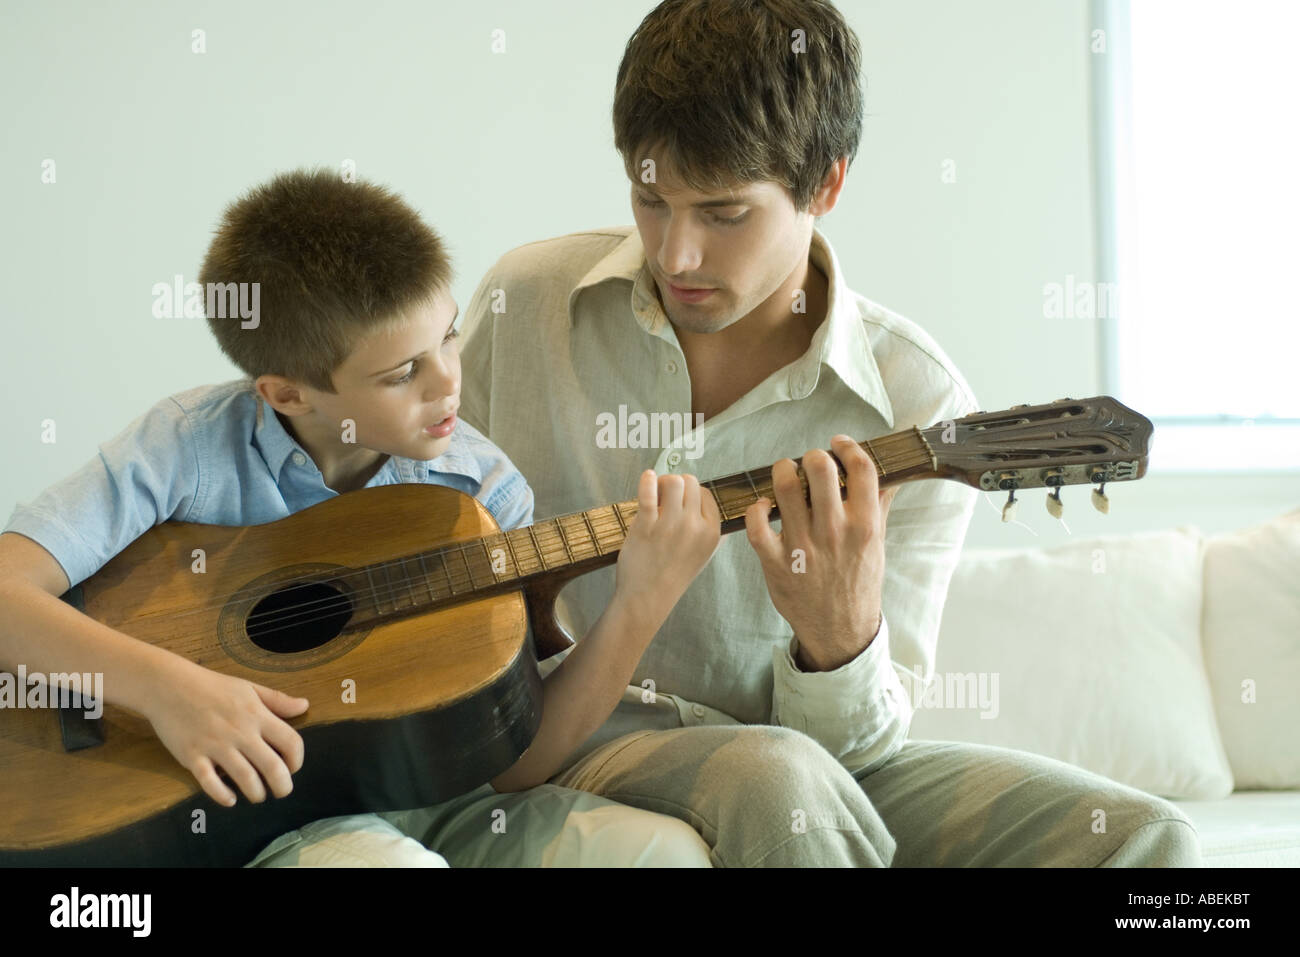 Father and son playing guitar together Stock Photo